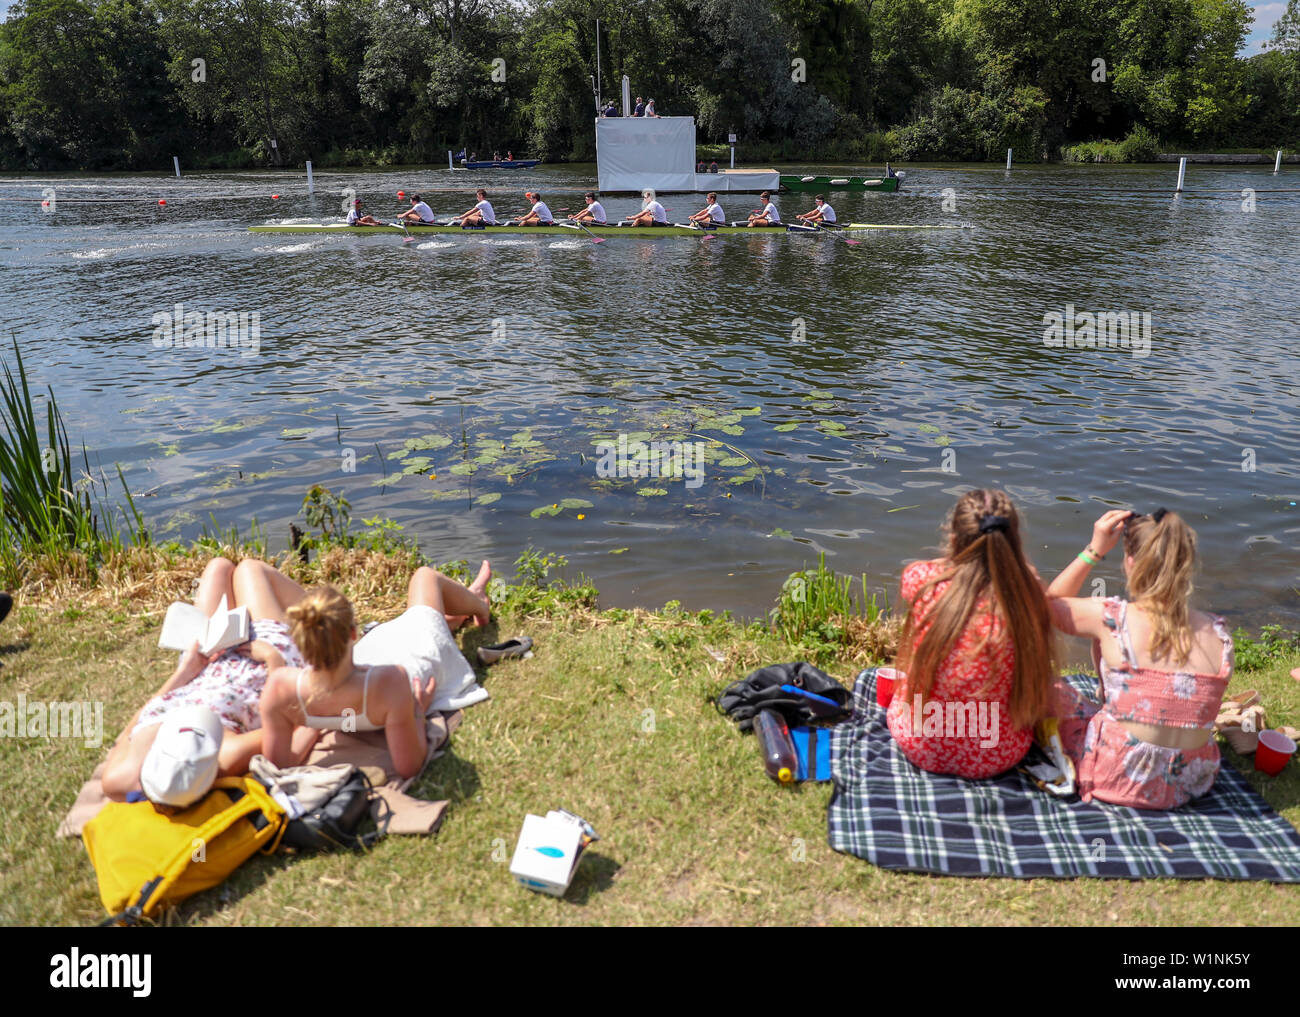 Women watch rowers from the river bank on the opening day of the 2019 Henley Royal Regatta alongside the river Thames. - Stock Image